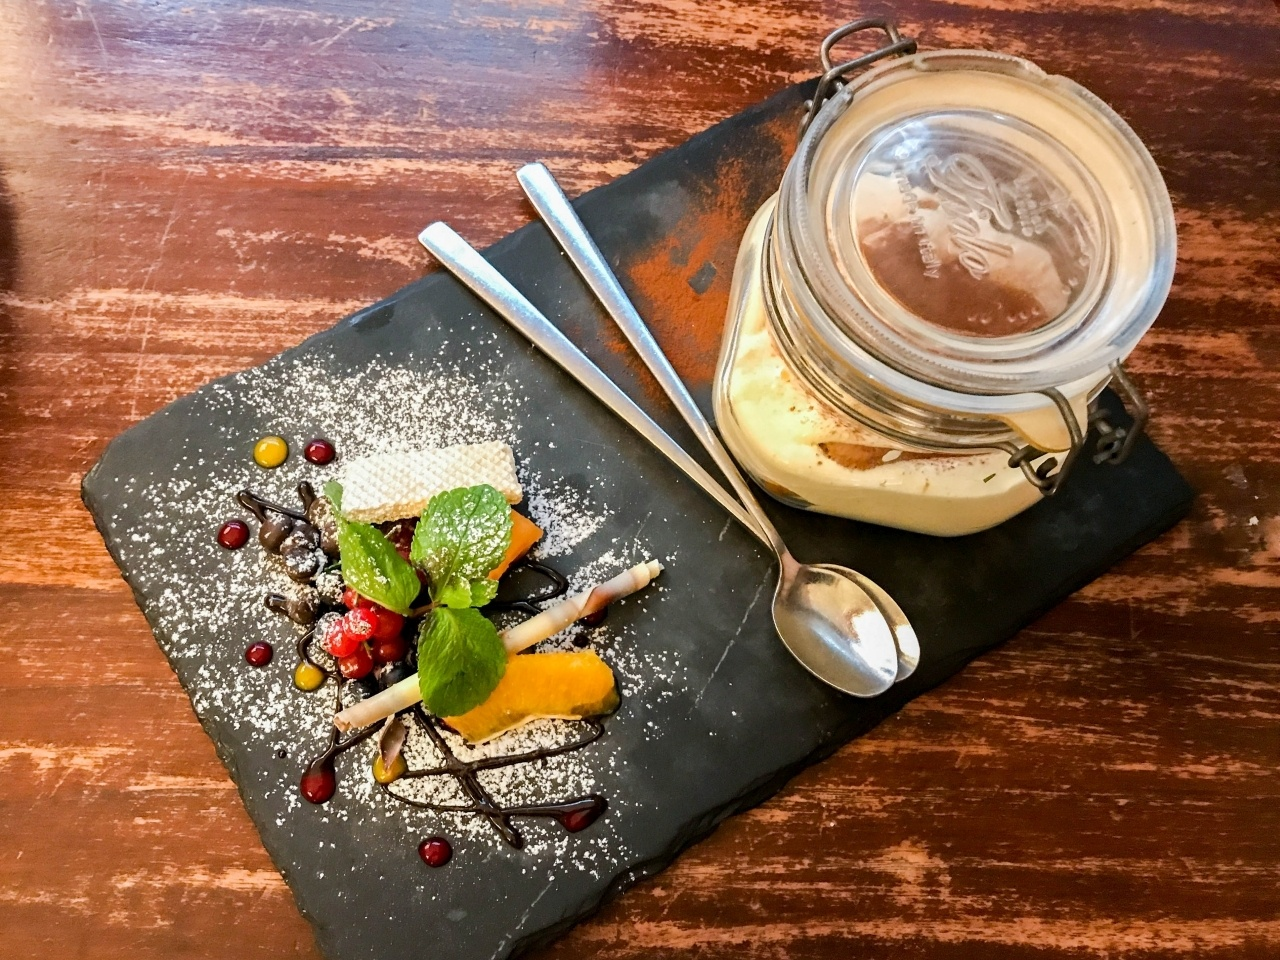 What to eat in Bolzano? There's so many awesome choices, but one thing's for sure, Tiramisu for dessert!